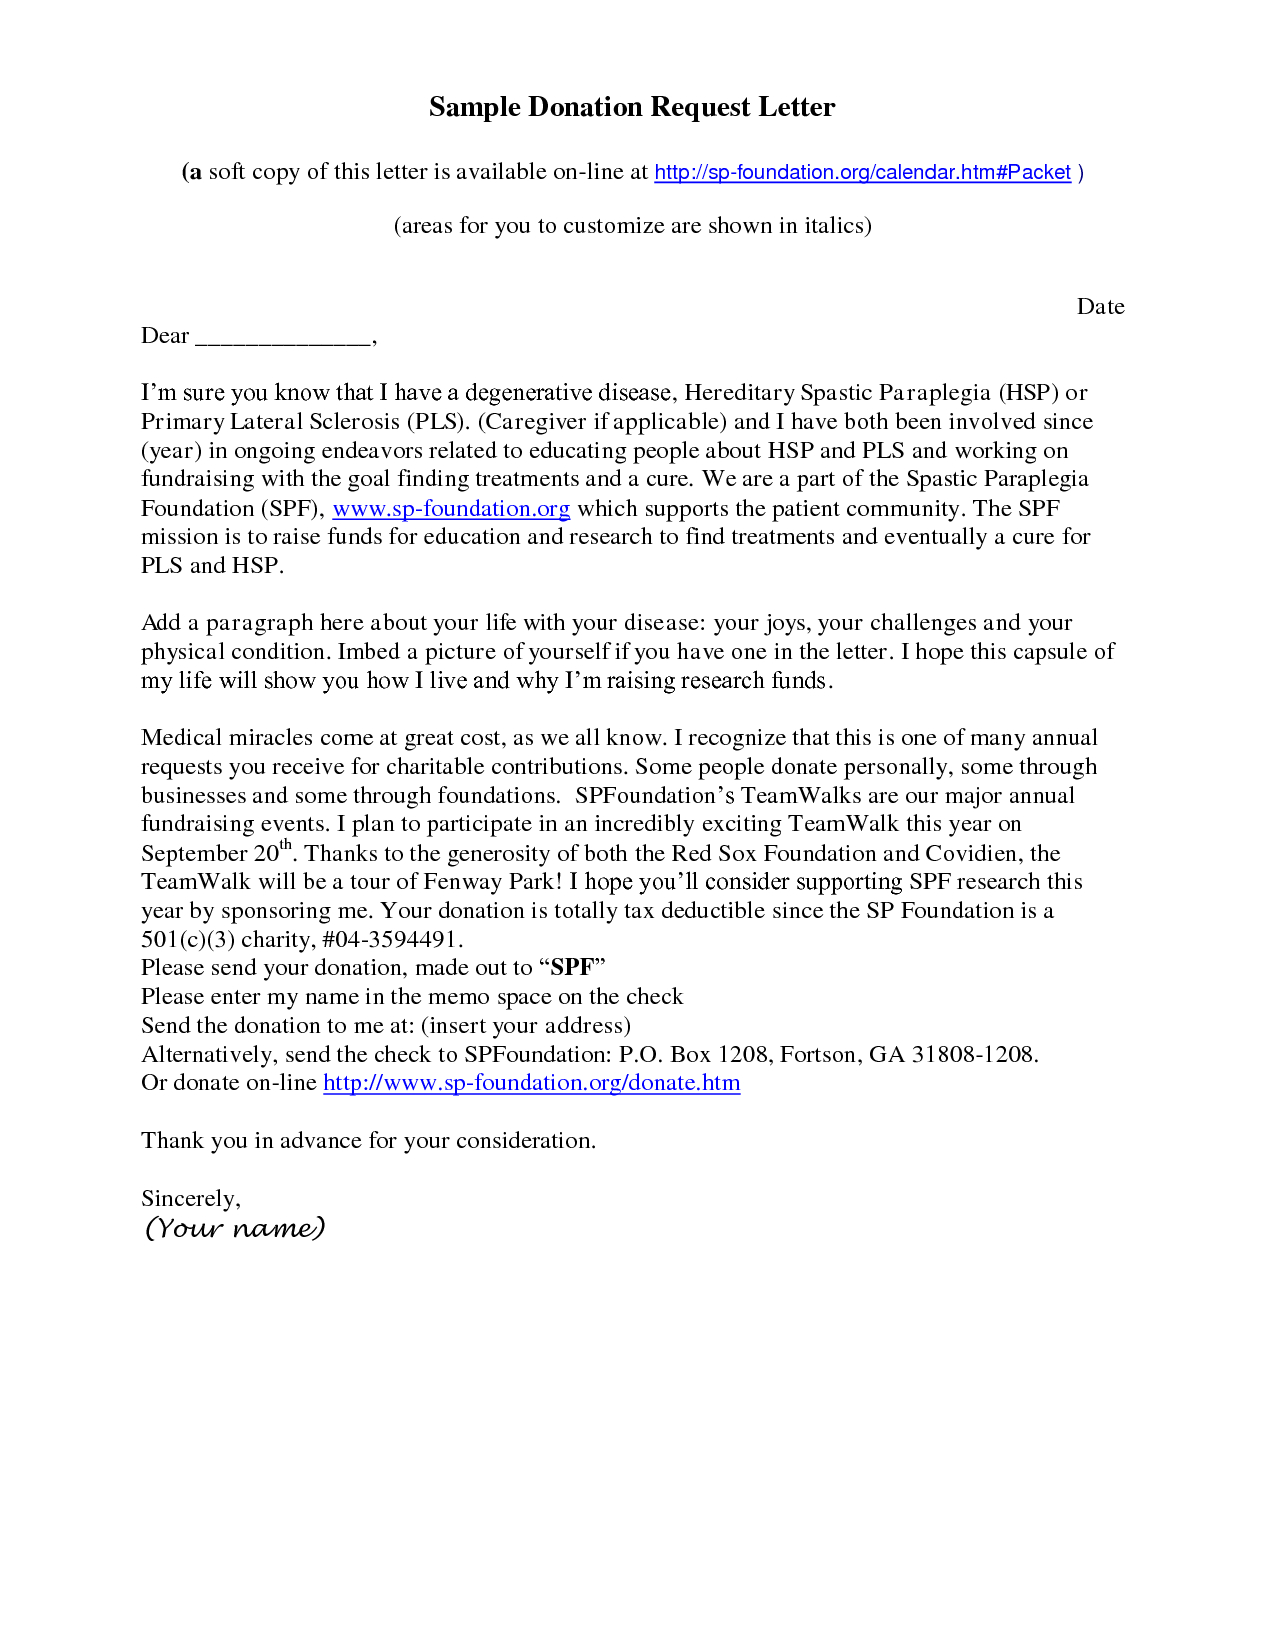 Donation Letter Template for Non Profit organization - How to Write A solicitation Letter for Donations Choice Image